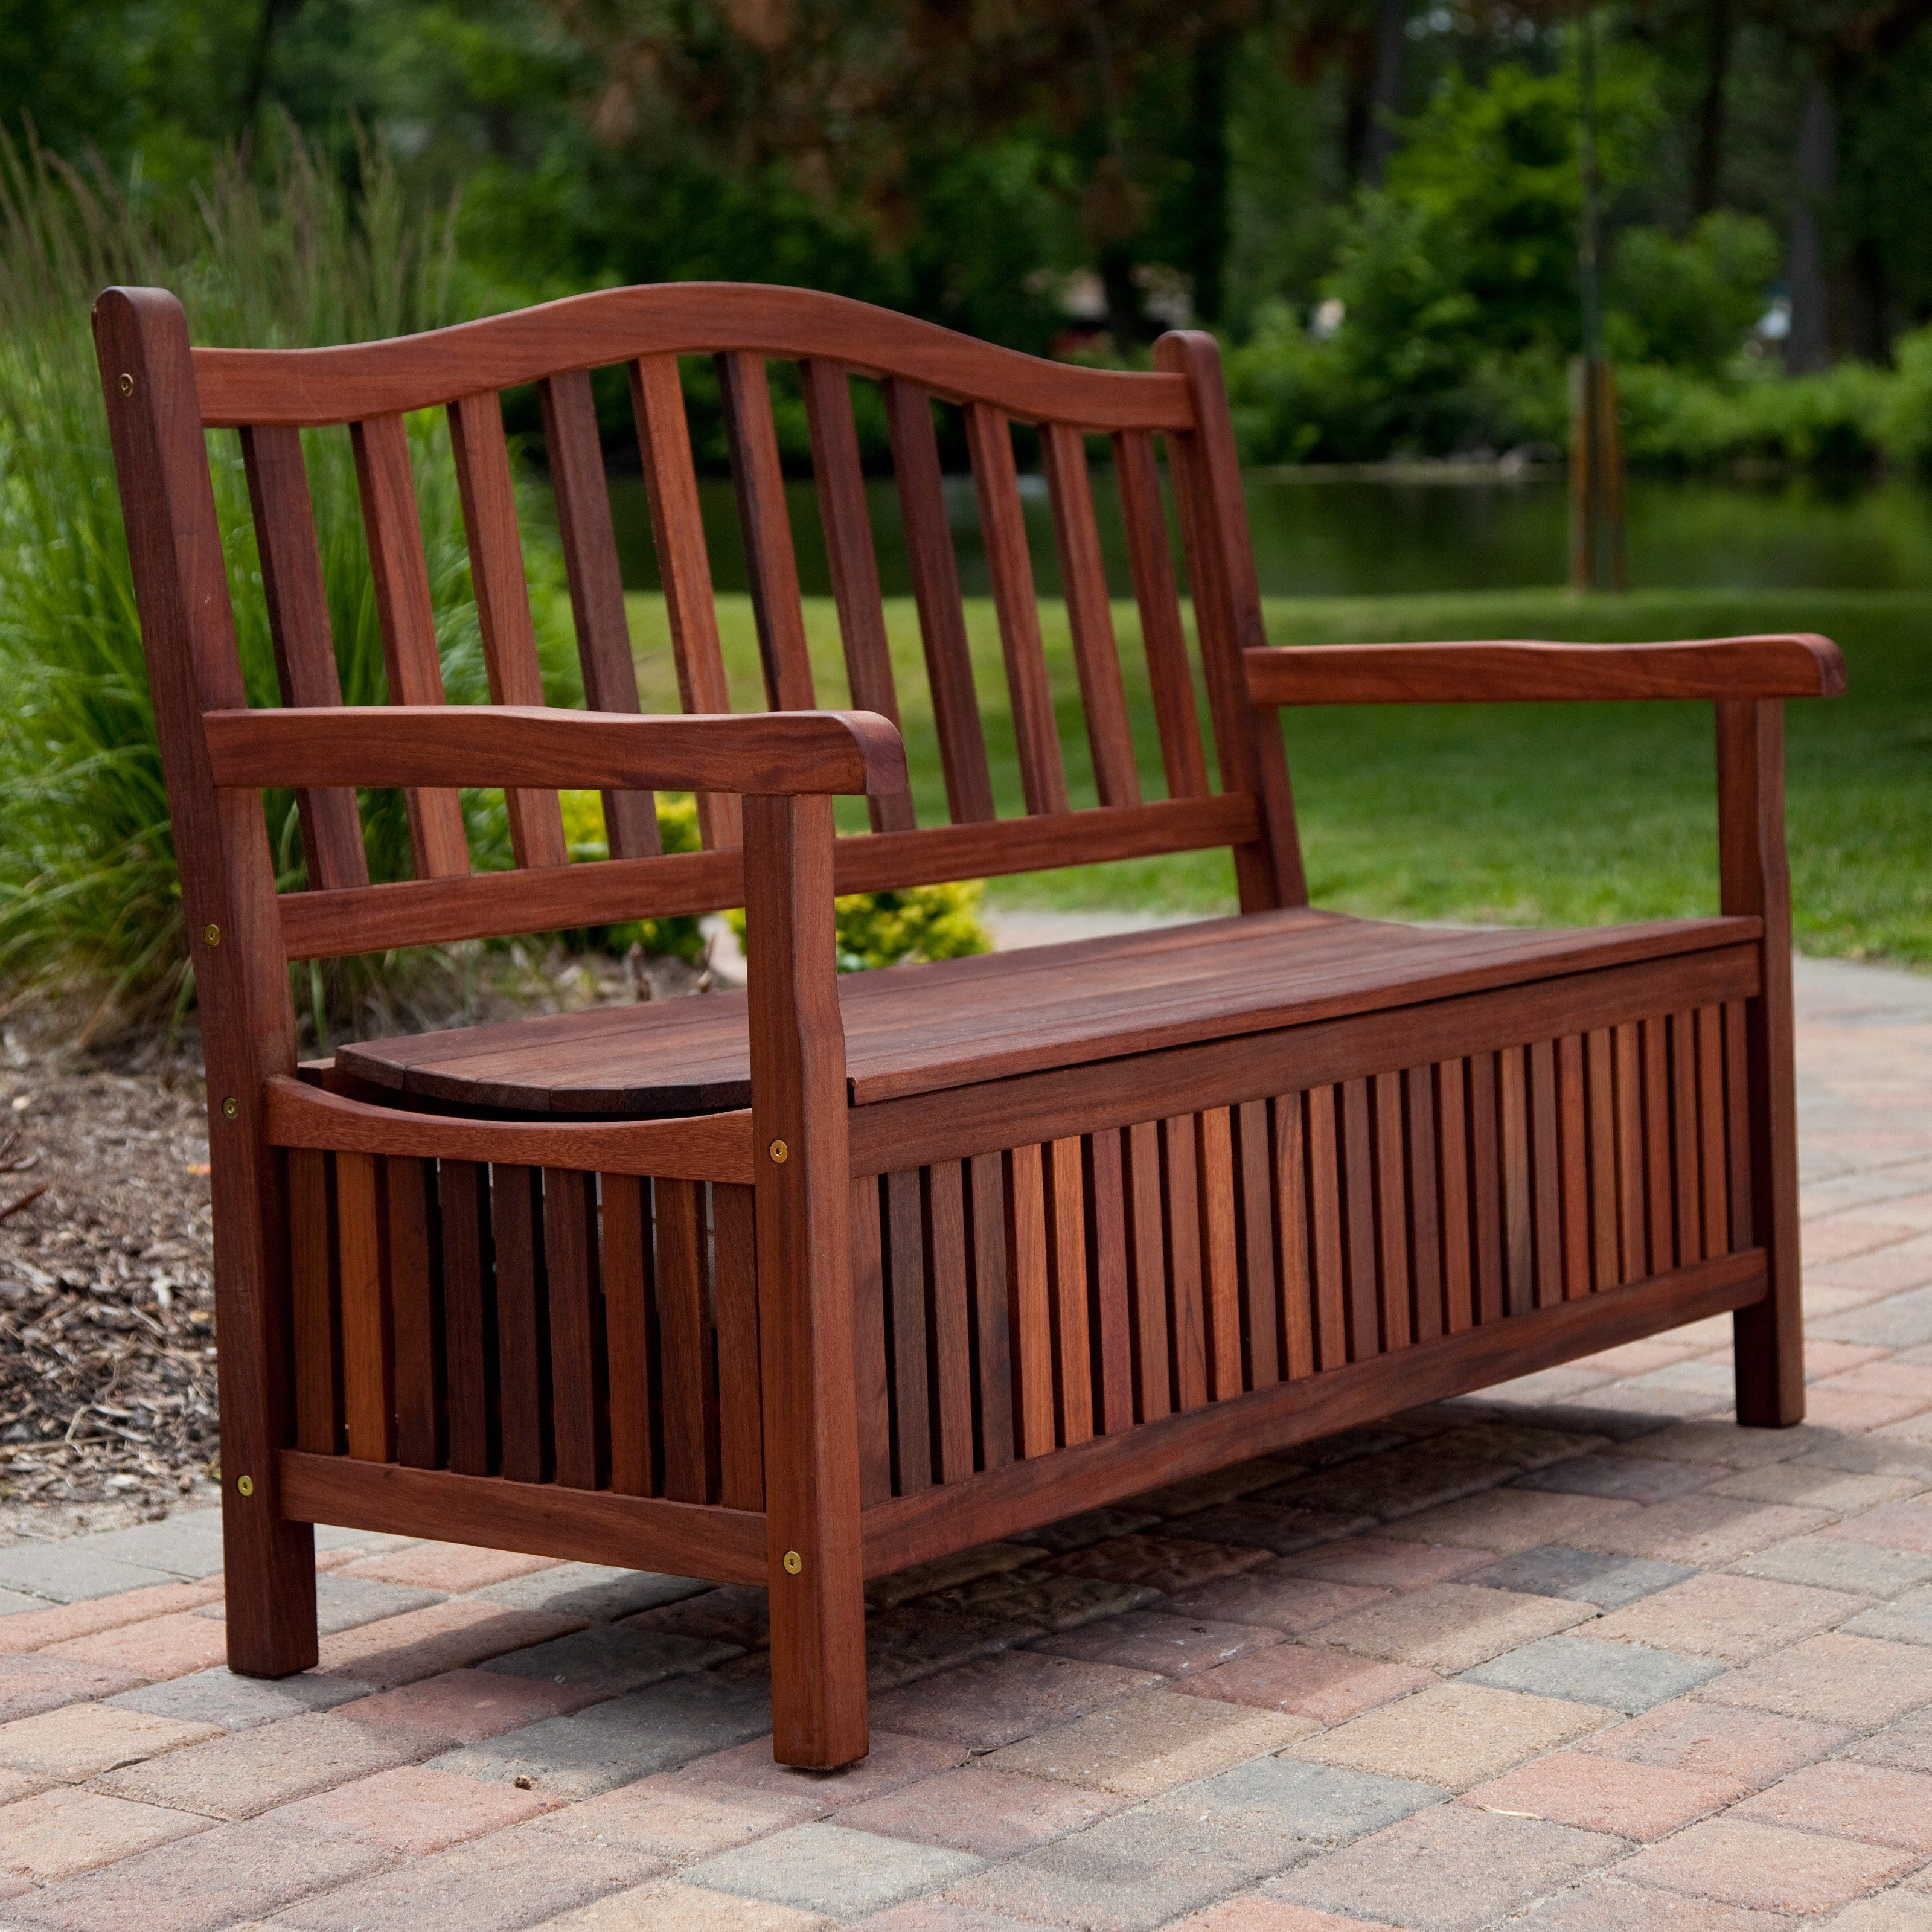 Curved Back Outdoor Wood Storage Bench   Take A Look At What The Coral  Coast Richmond 51 In. Curved Back Outdoor Wood Storage Bench Has To Offer.